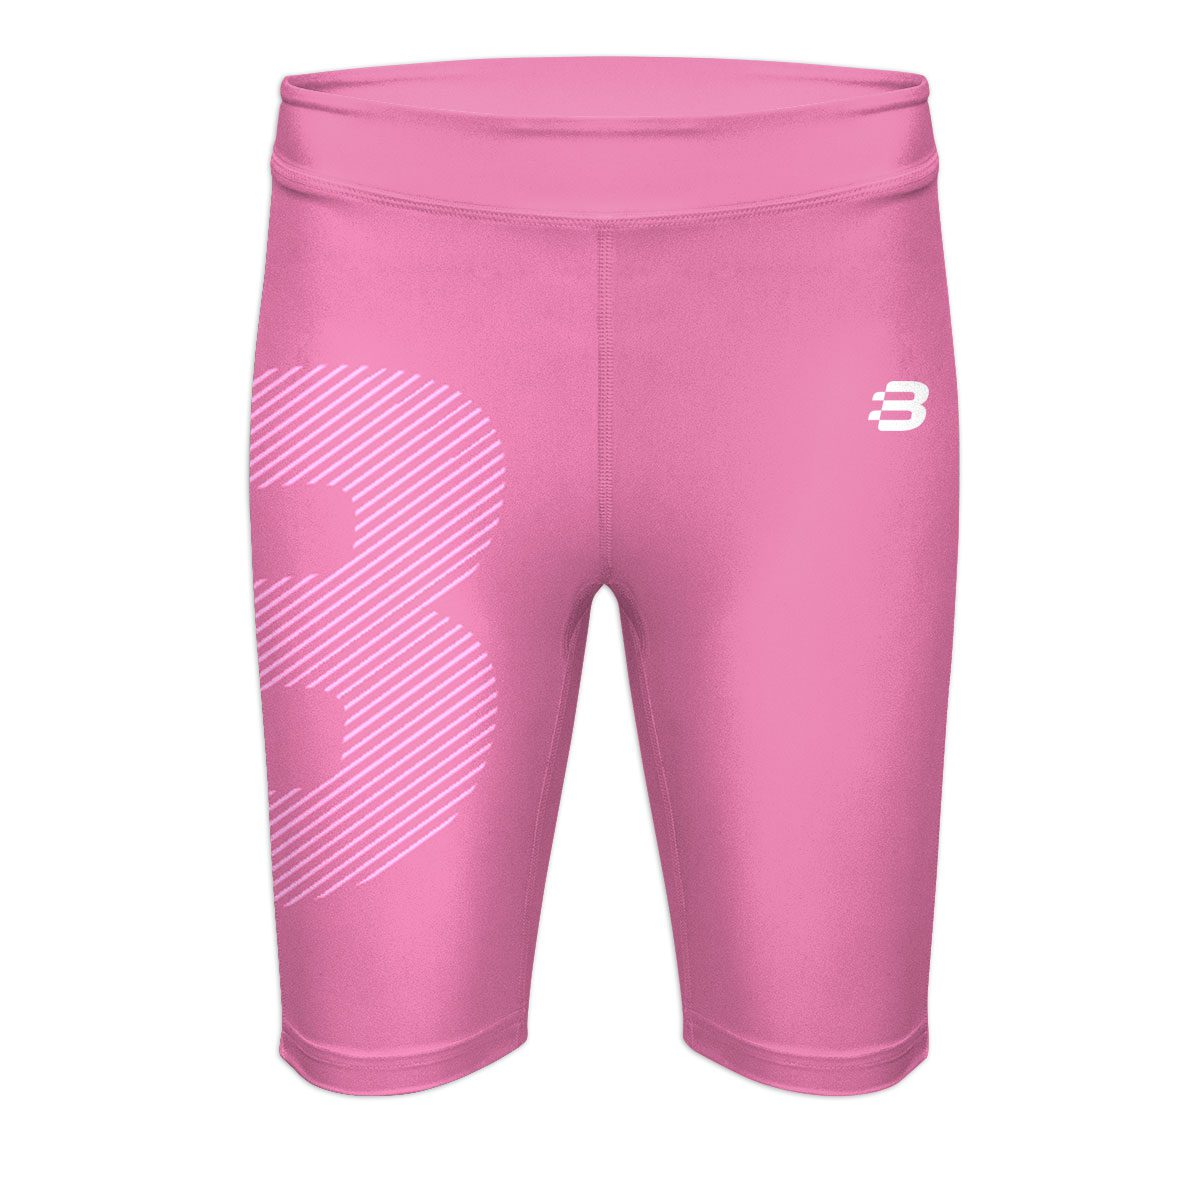 Ladies Compression Shorts - Light Pink